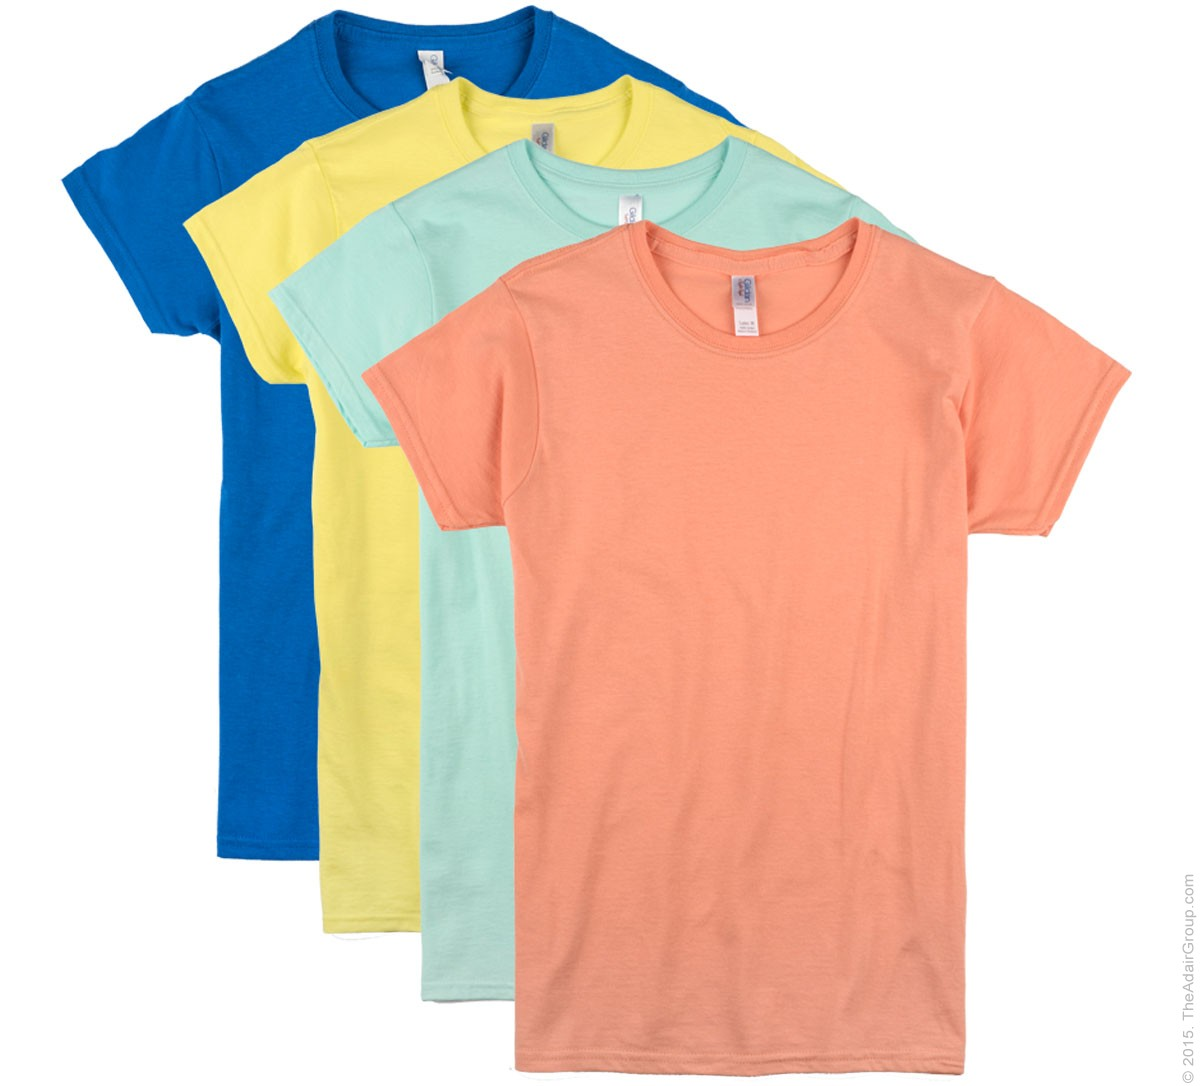 Shirts for sale in bulk quality t shirt clearance Bulk quality t shirts